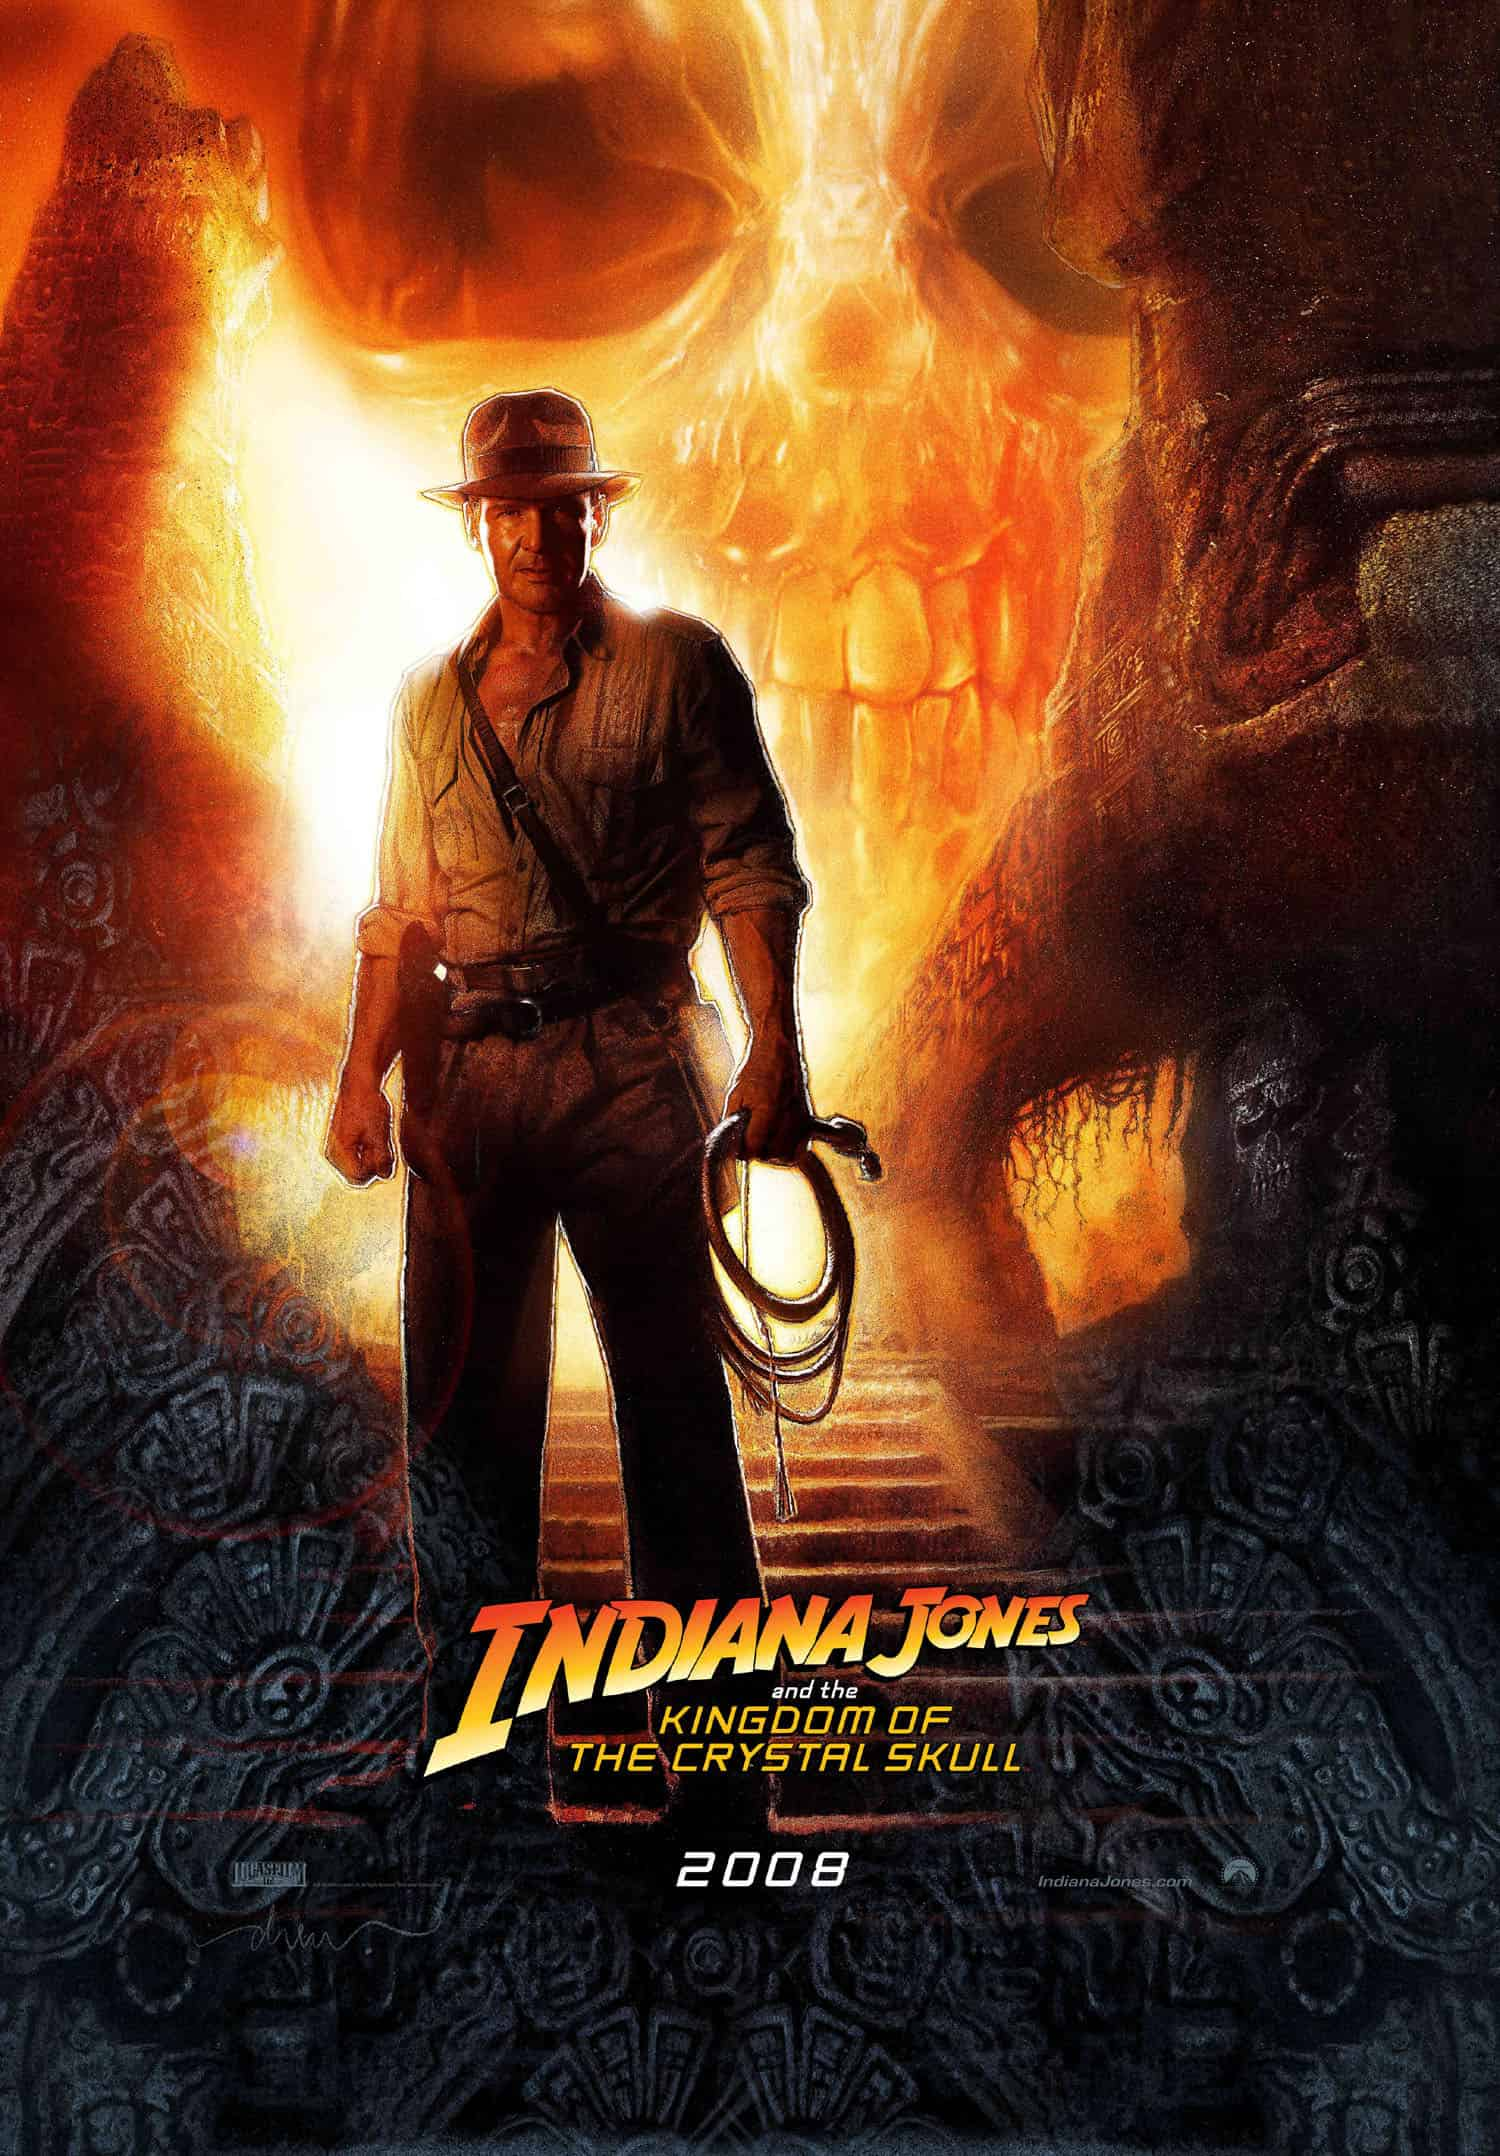 Indiana Jones and the Kingdom of the Crystal Skull, 2008